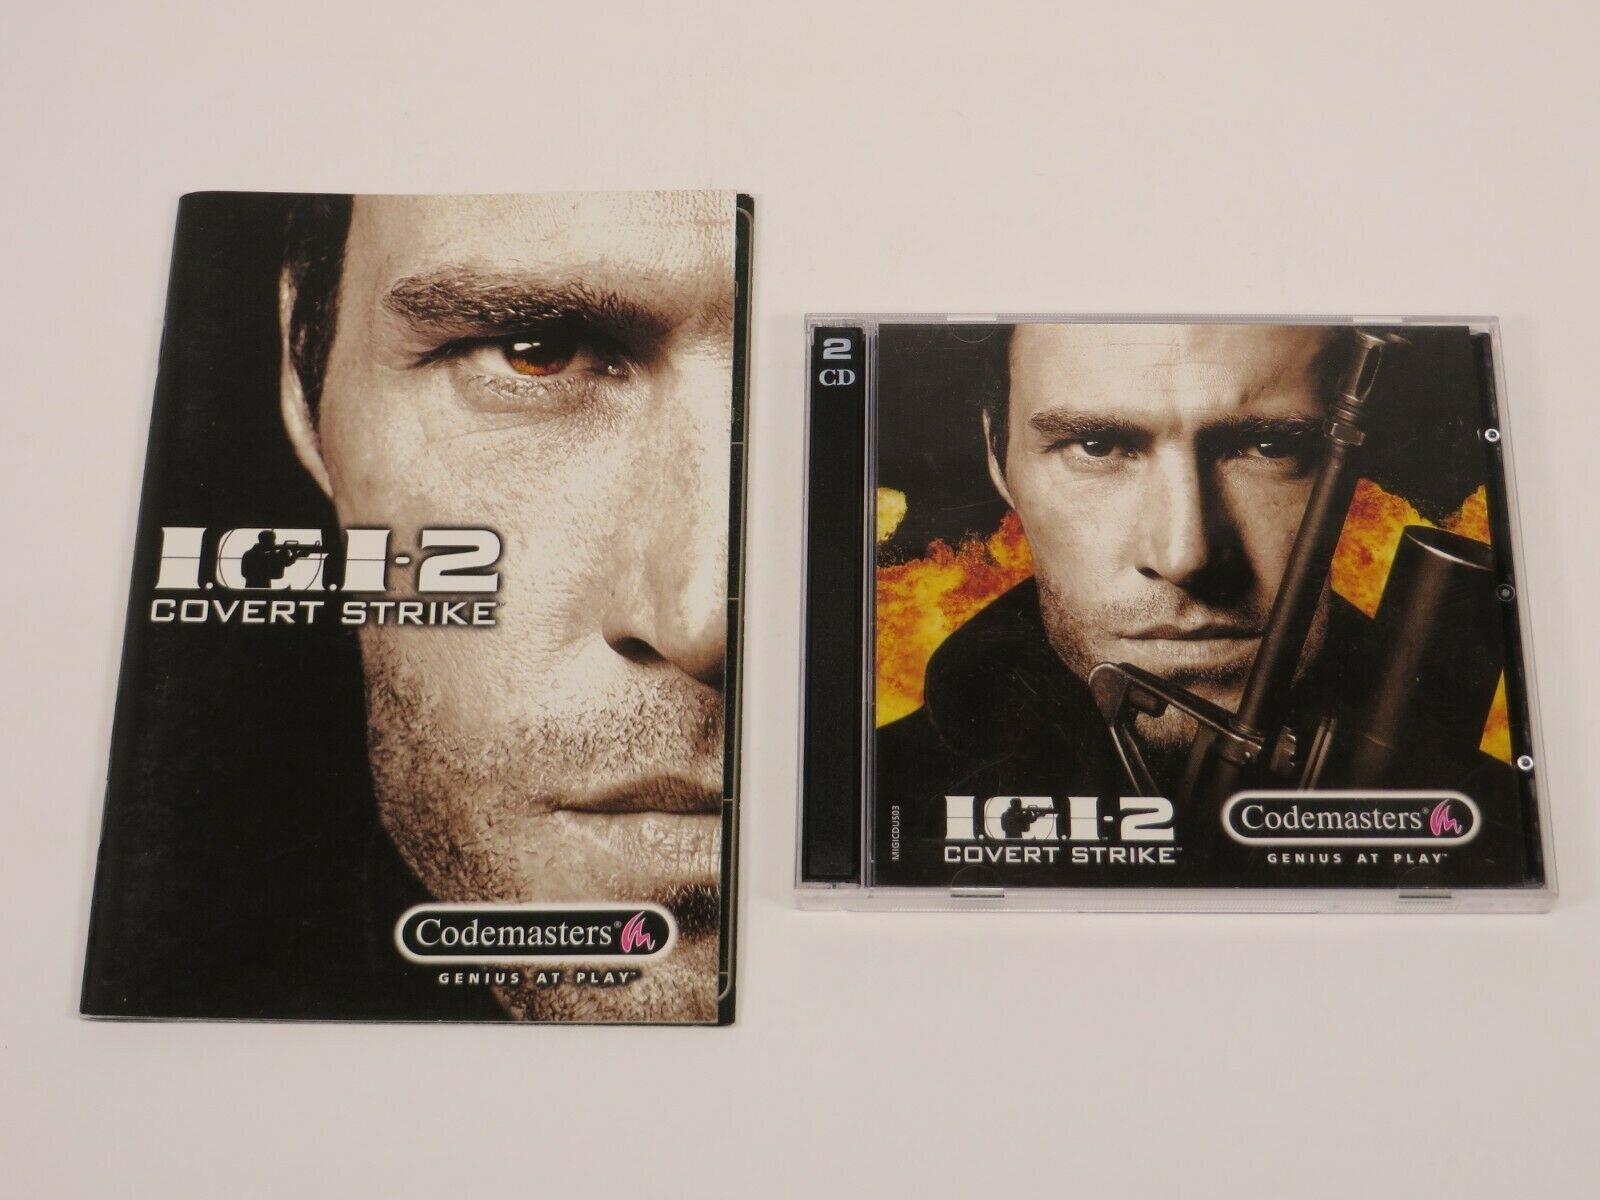 Computer Games - IGI 2 (PC, 2003) PC Vintage Computer Game Codemasters